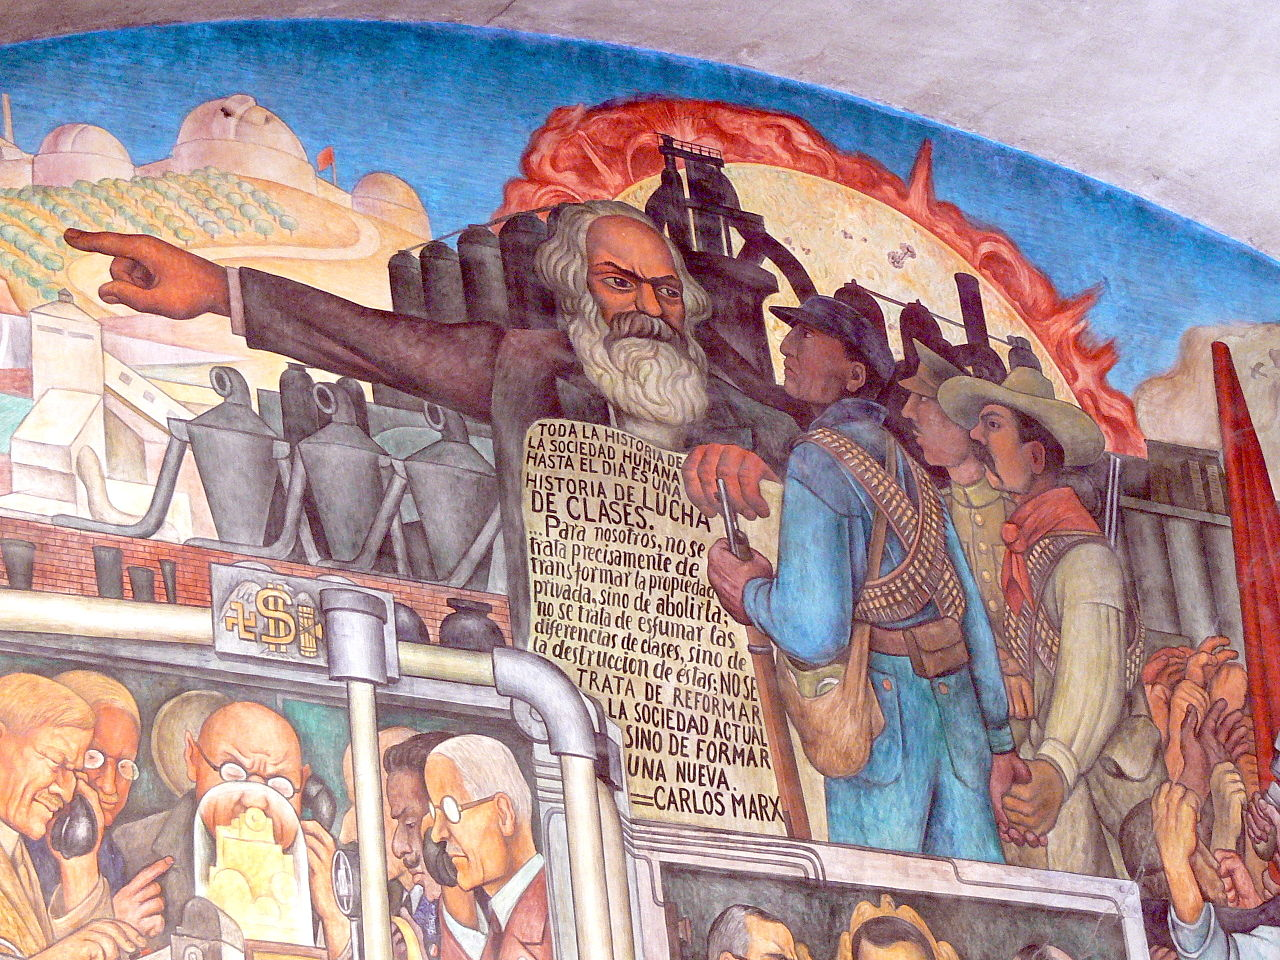 Mexico City, Palacio Nacional. Mural by Diego Rivera, History of Mexico, Wolfgang Sauber